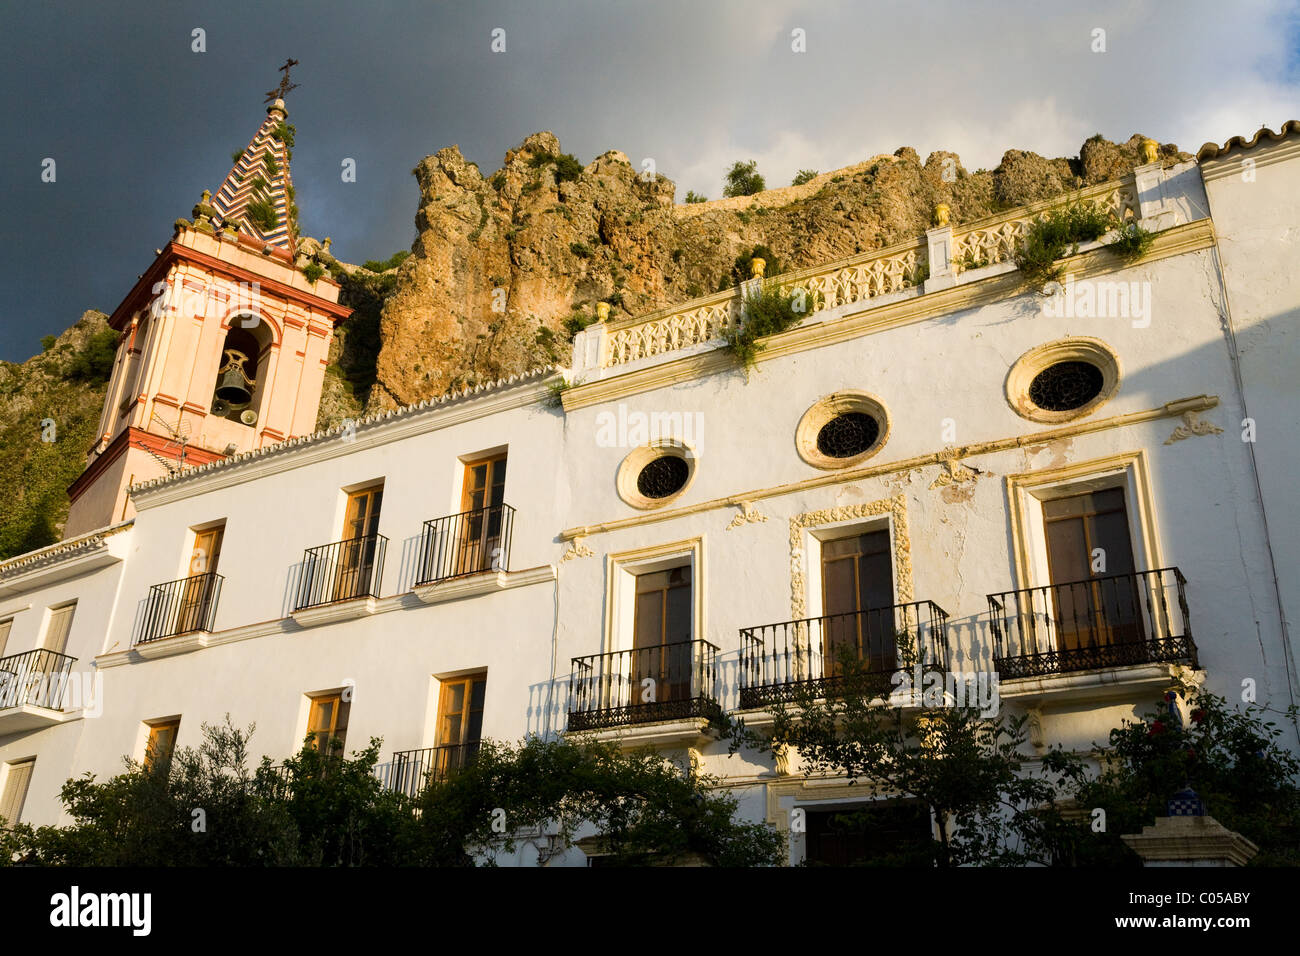 Typical Traditional Spanish Buildings Residential Area At Dusk Sunset Sun Set In The White Village Of Zahara Spain